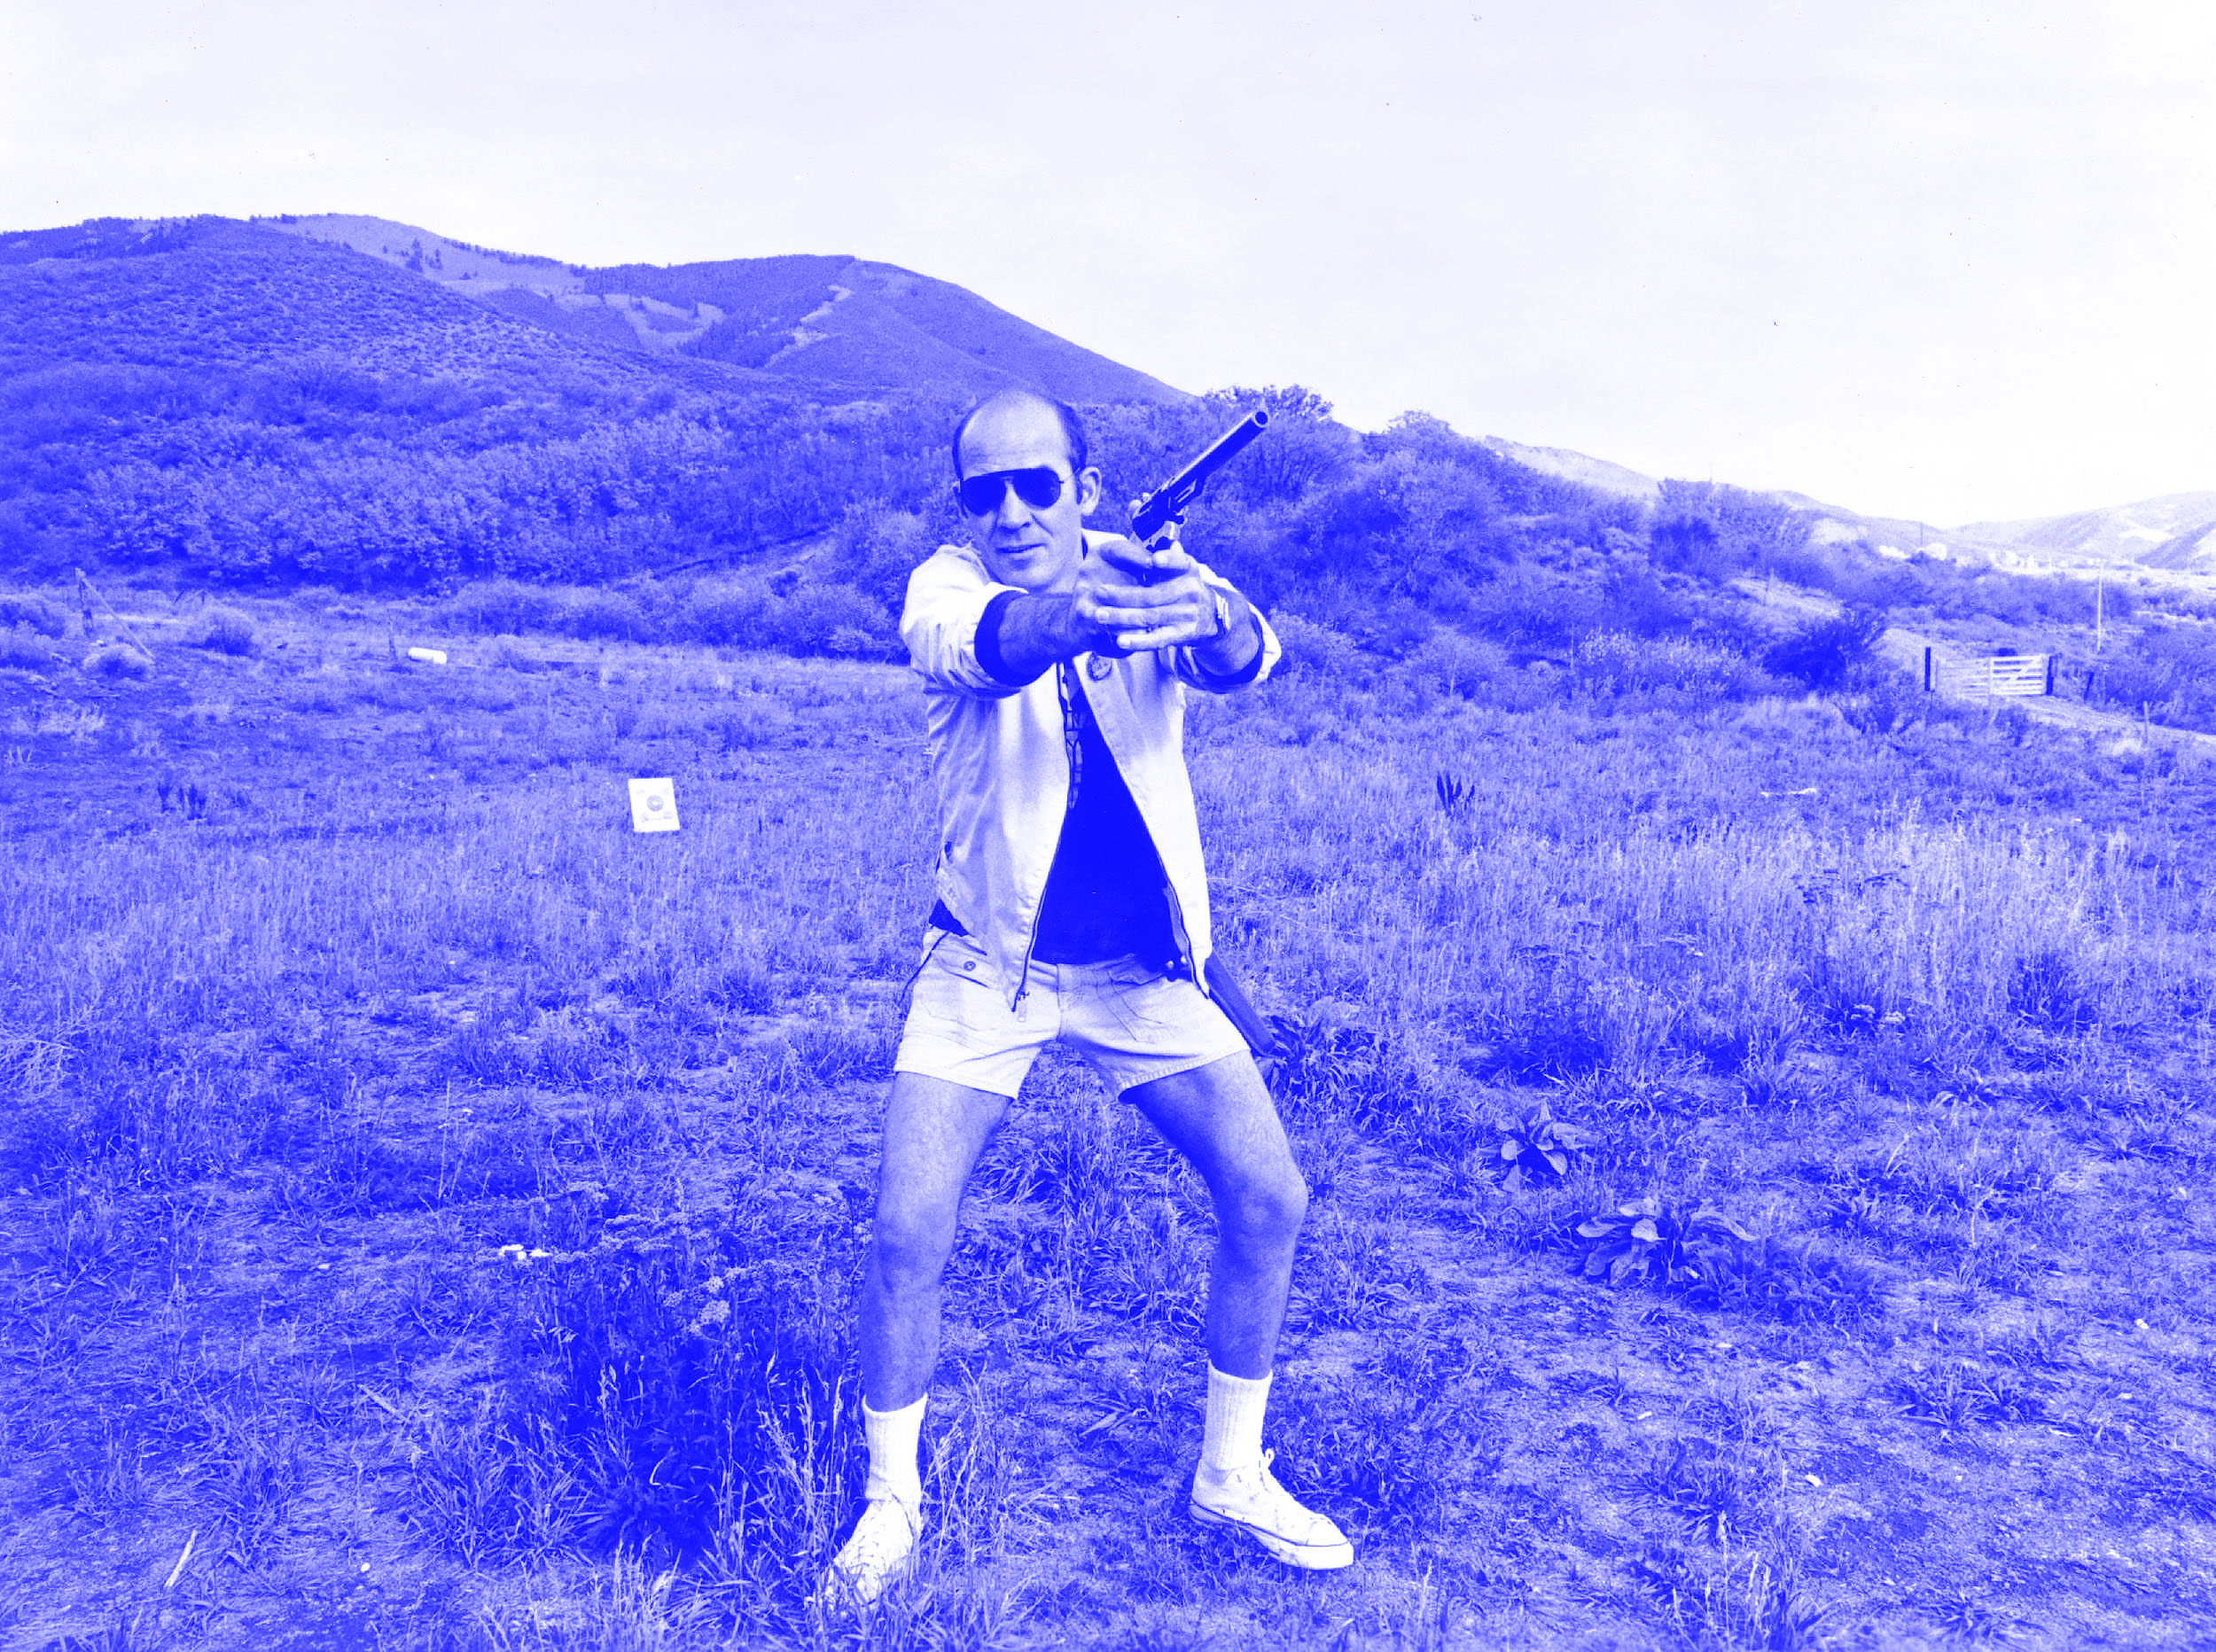 Hunter S. Thompson immersing himself in creative non-fiction.